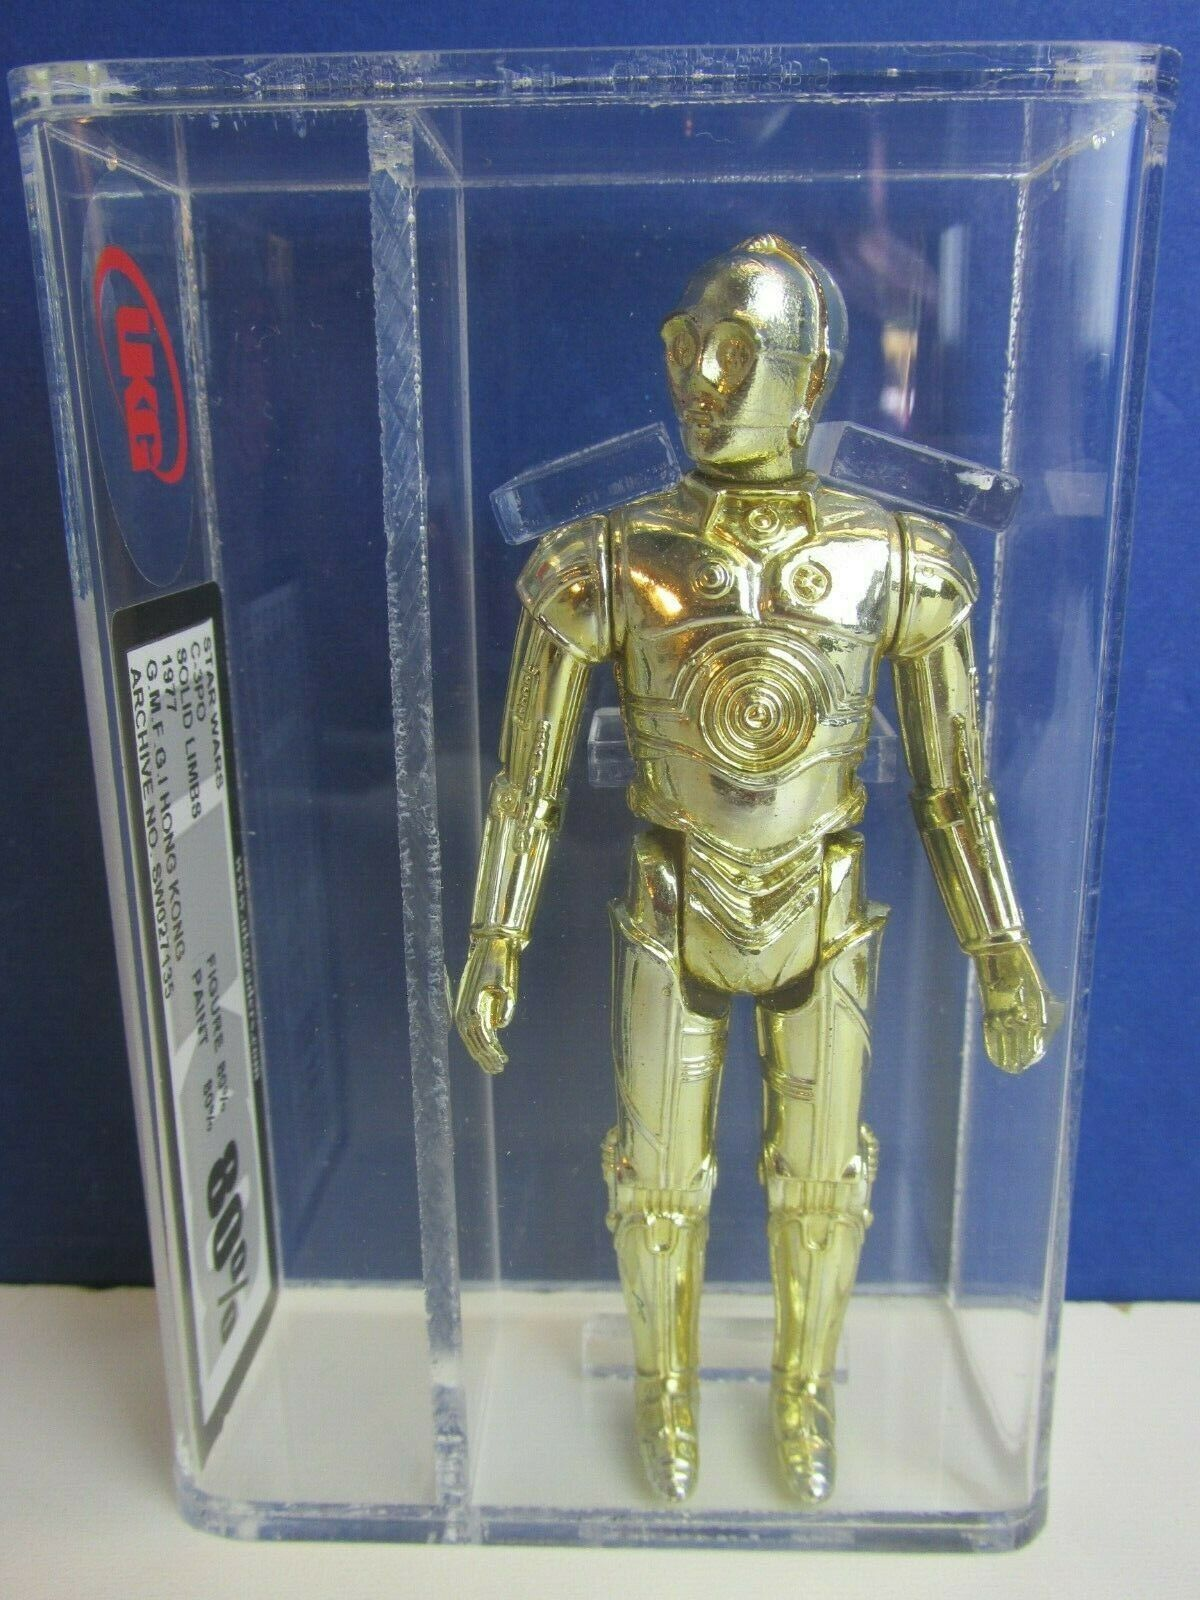 Vintage  star wars C-3PO ACTION FIGURE 1977 solid limbs UKG not AFA kenner  aucune hésitation! achetez maintenant!